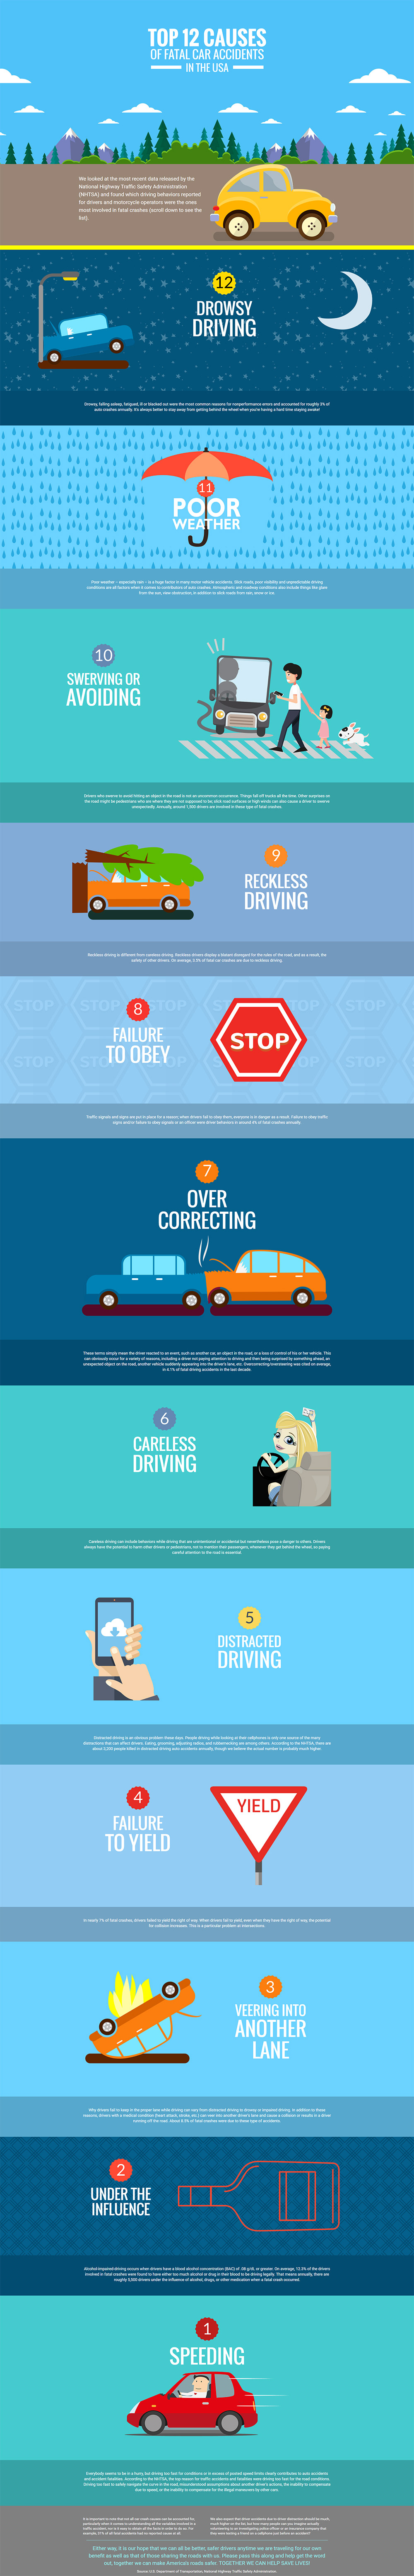 top12-causes-fatal-car-accidents